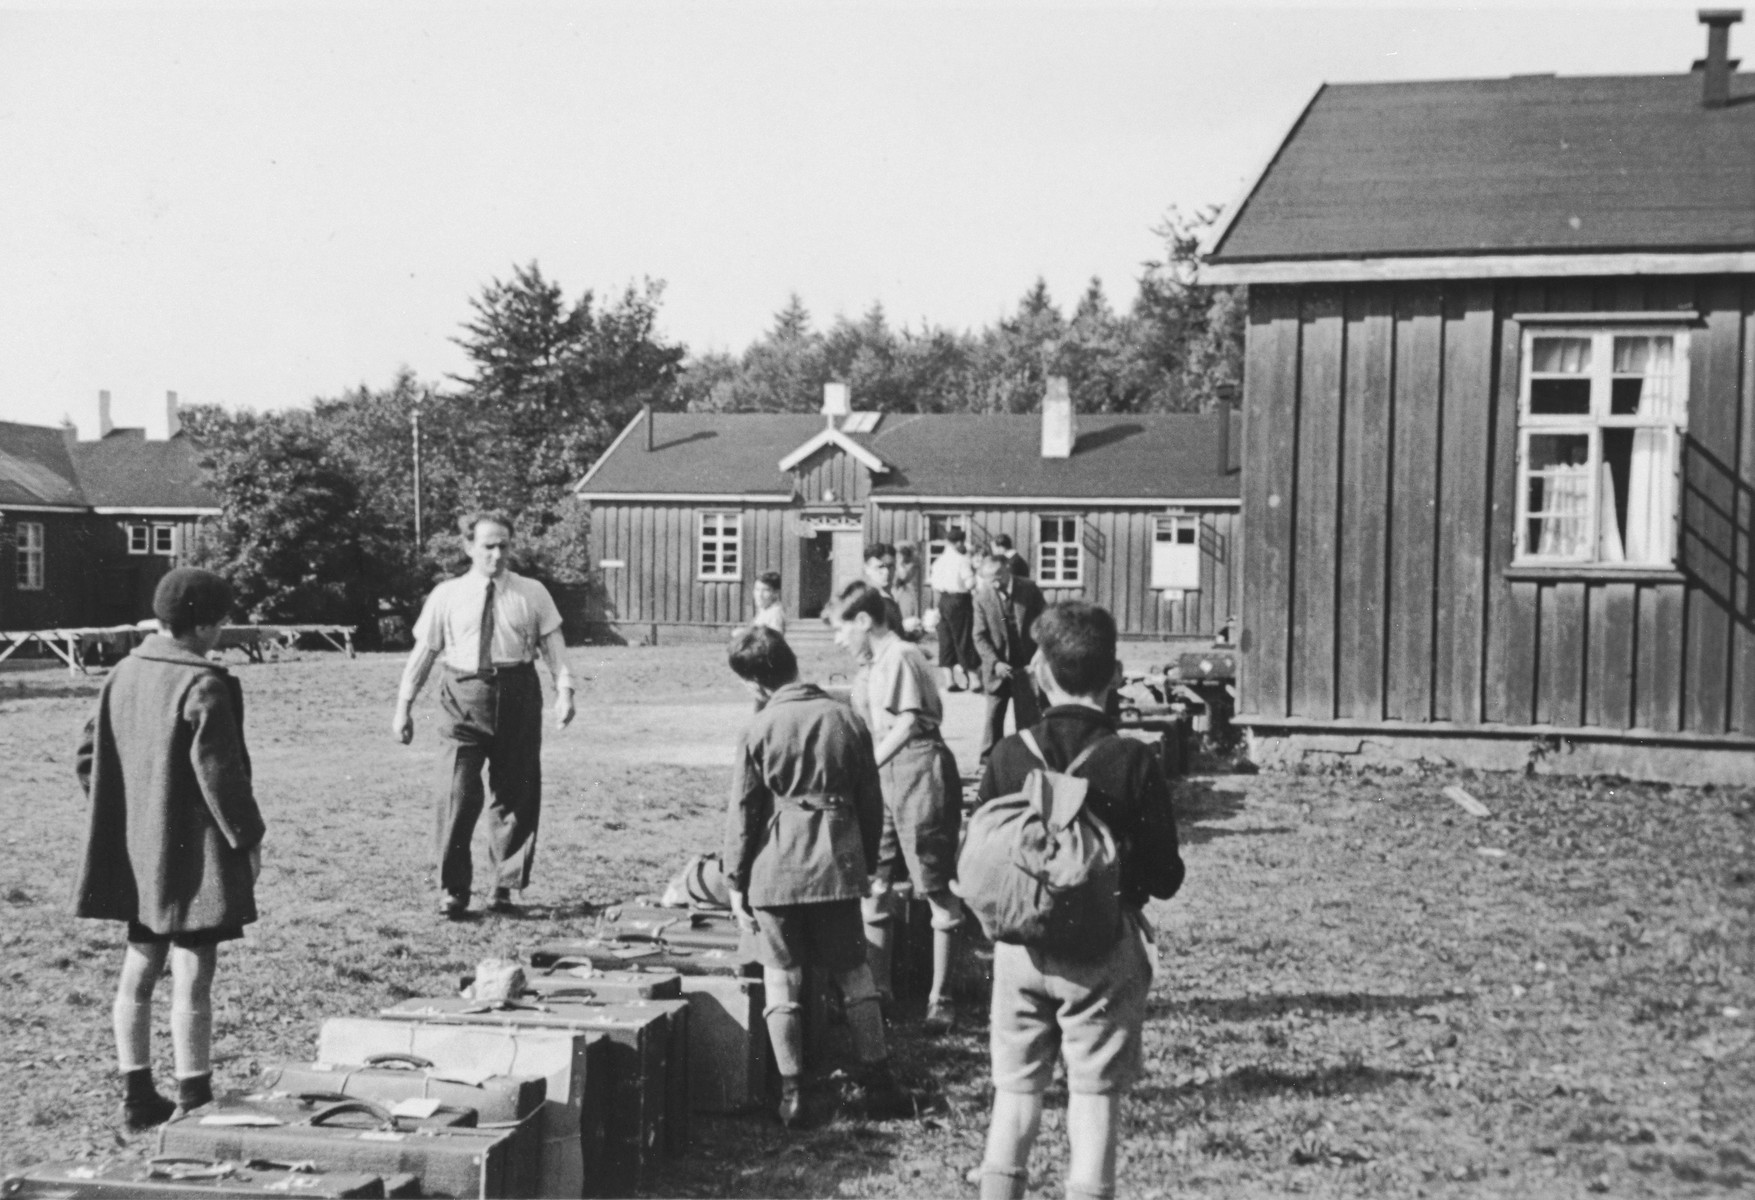 Jewish children from Germany prepare to leave a Kinderlager [children's recreational summer camp] in Horserod, Denmark.    In 1935-36 Norbert Wollheim was involved in organizing groups of German Jewish youth to attend a summer camp in Denmark.